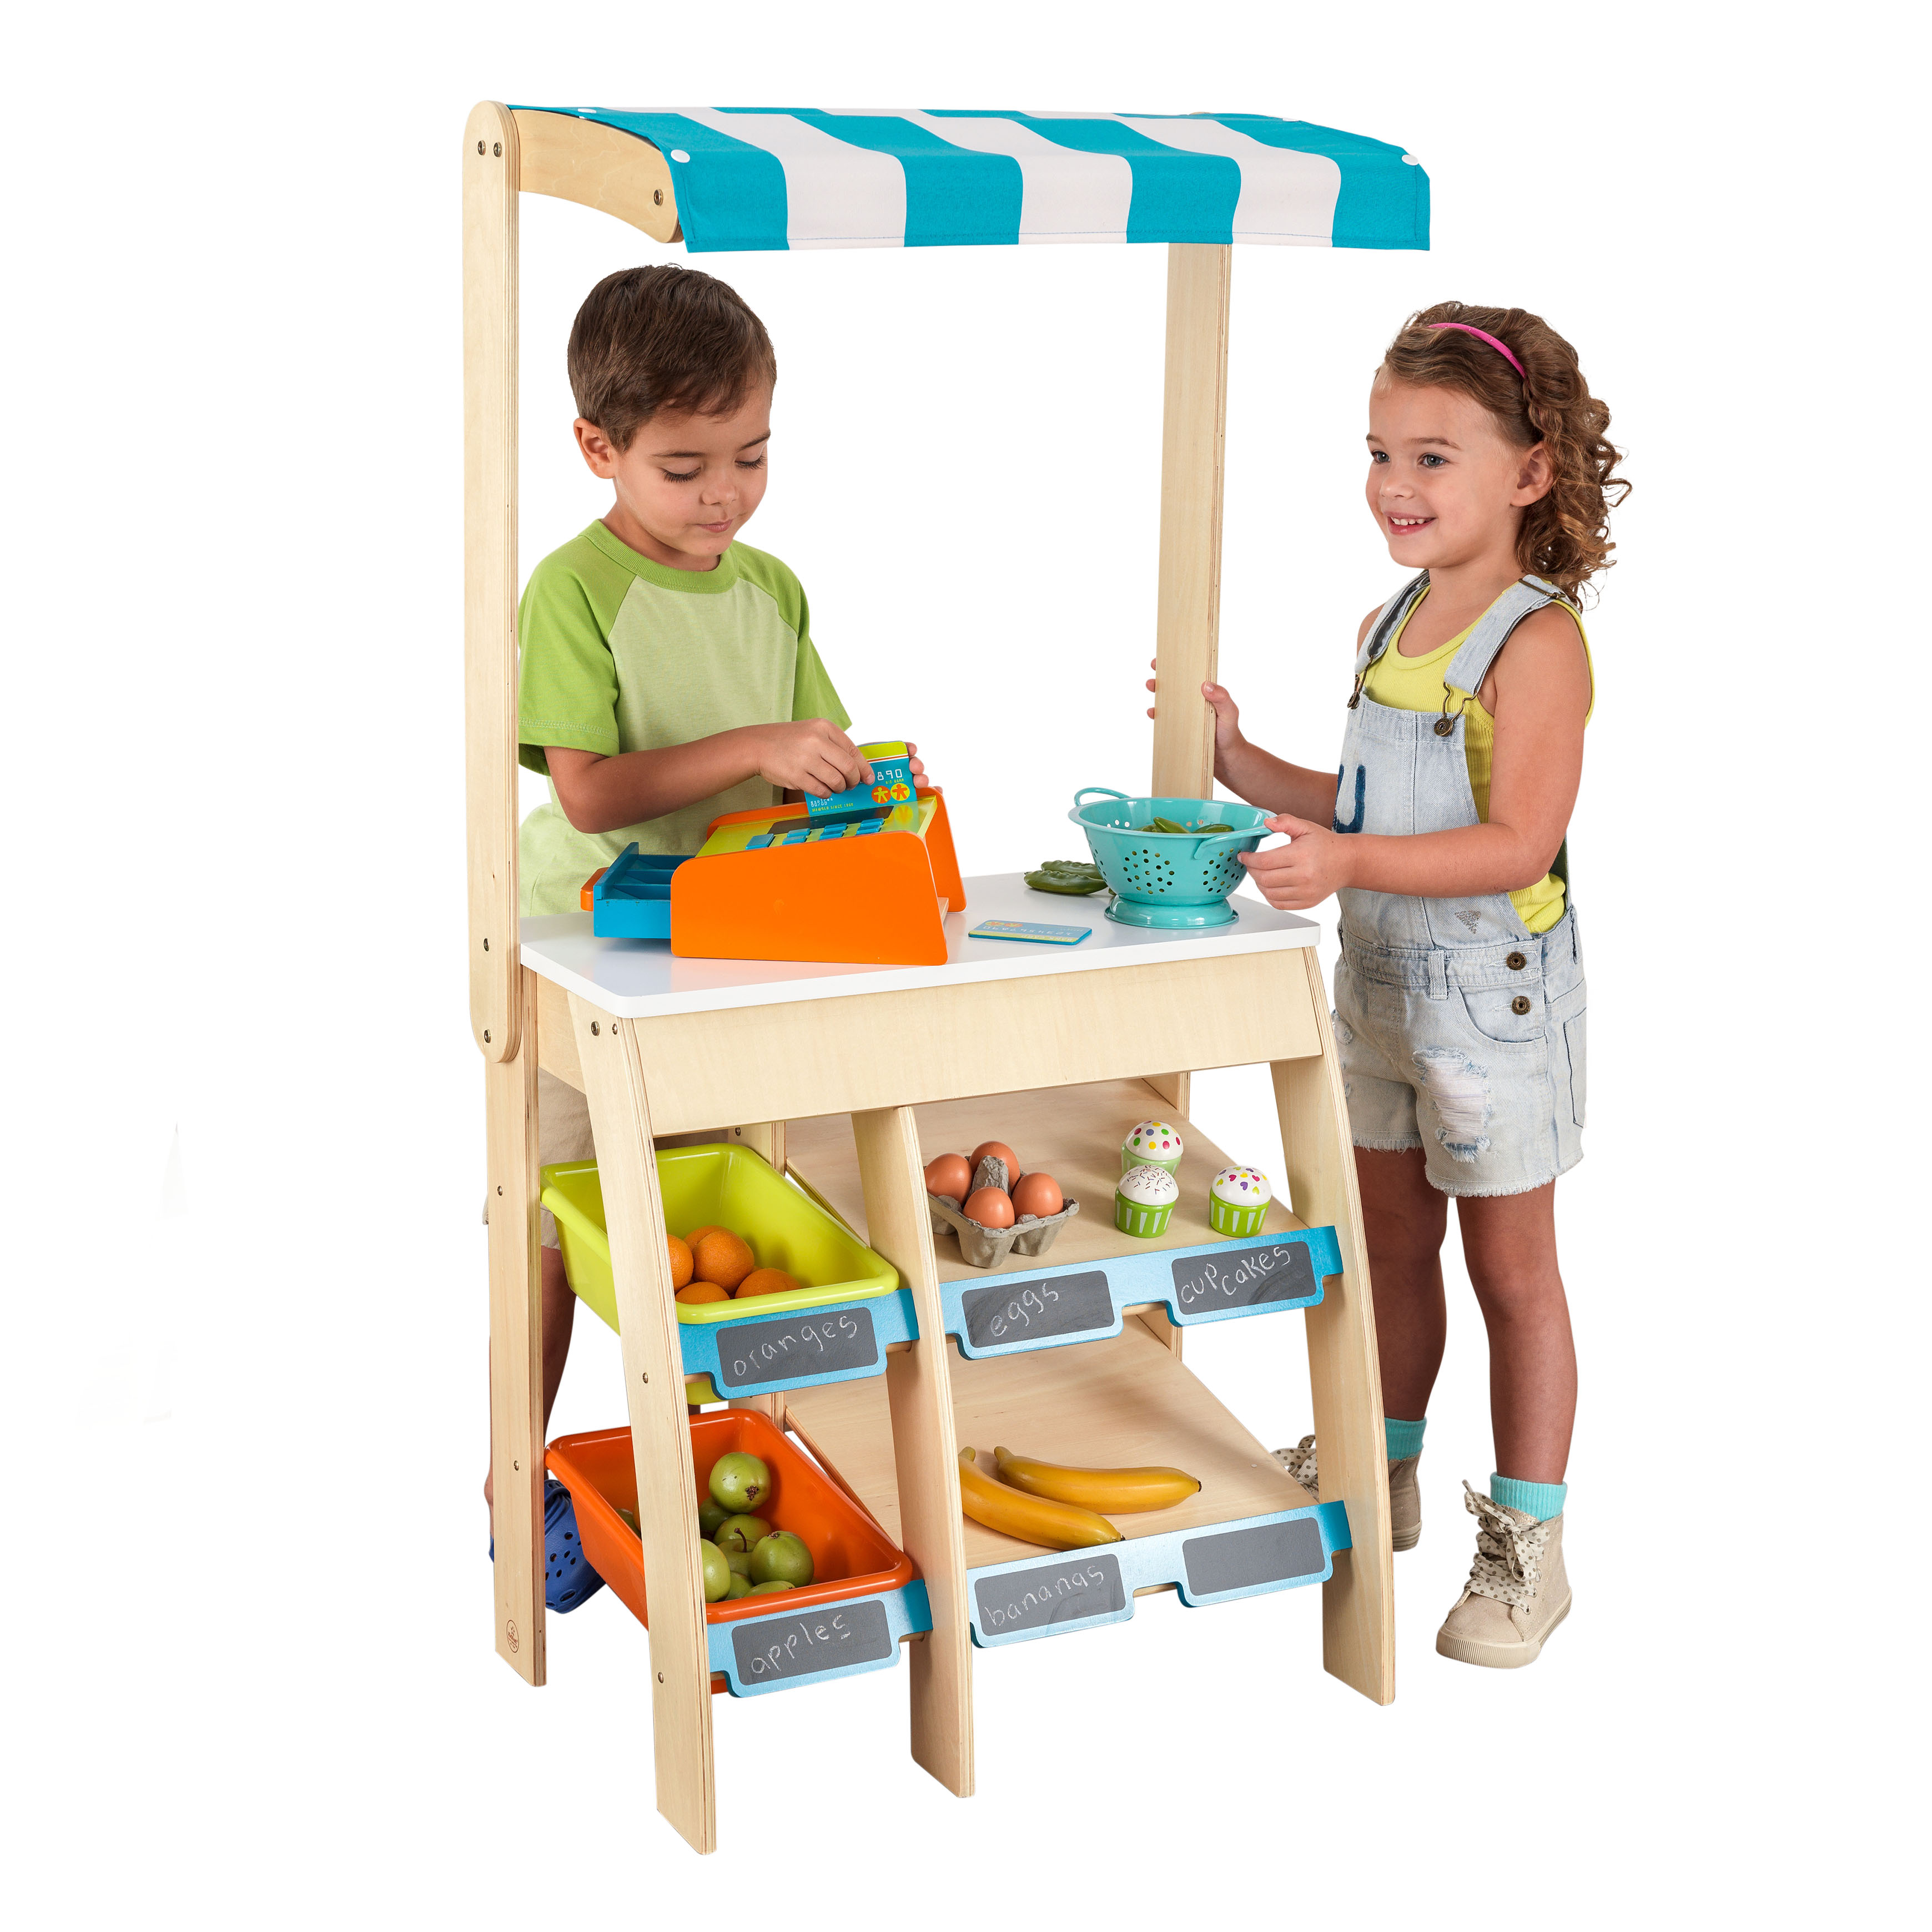 KidKraft Colorful Wooden Grocery Store Marketplace Toy - Multi Colored, Extra Storage, Chalkboard, For Multiple Children